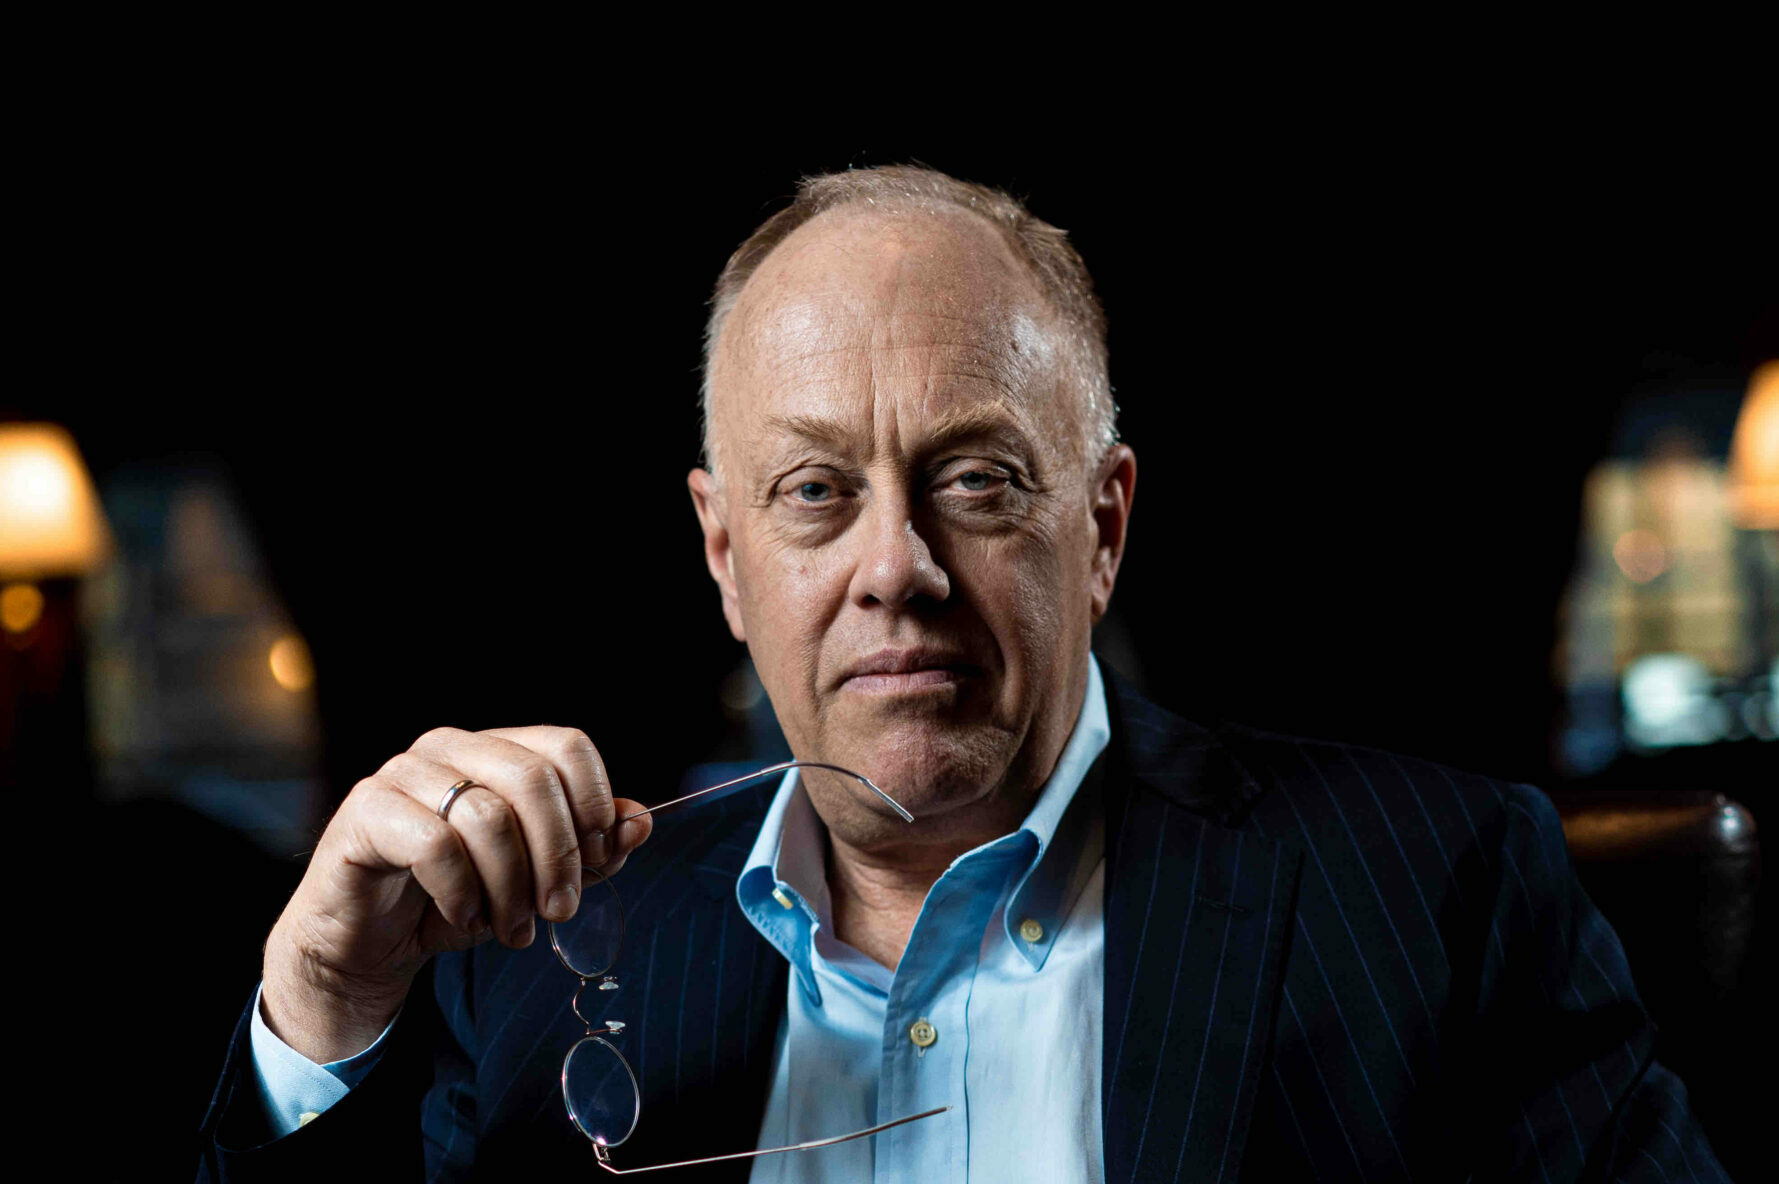 Head shot of author Chris Hedges seated holding his glasses